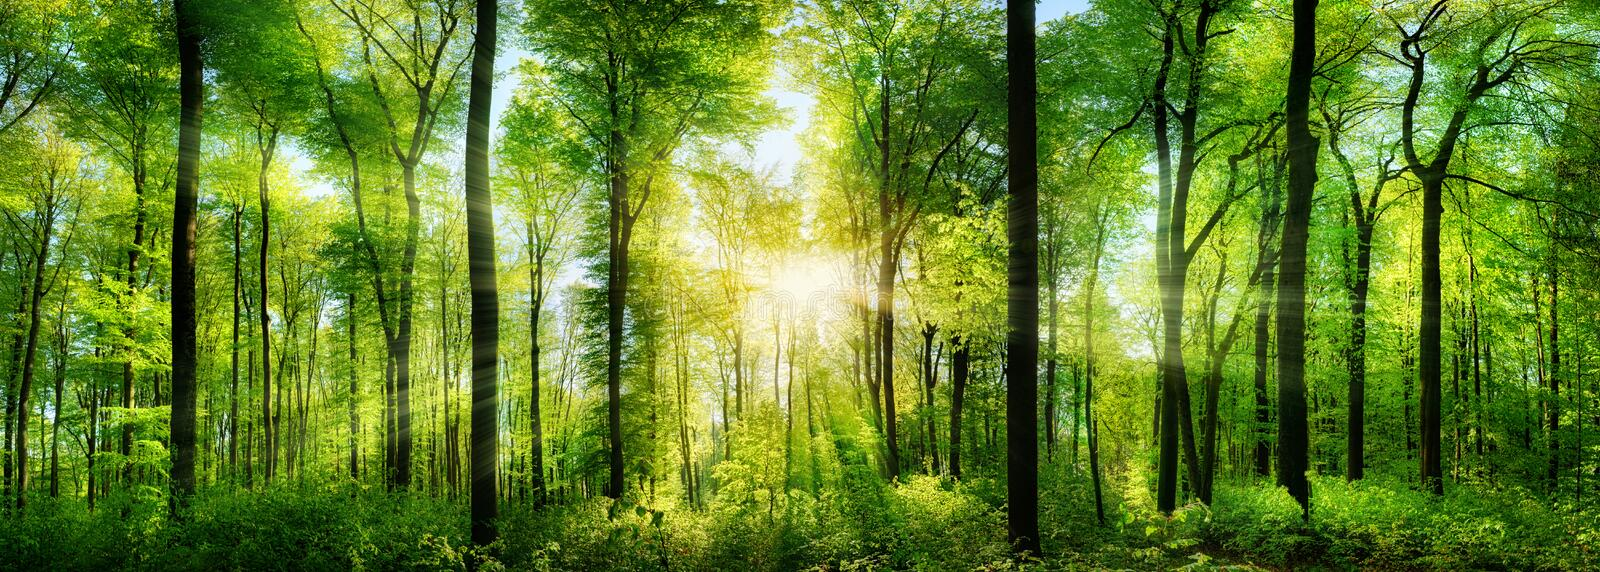 Forest panorama with rays of sunlight stock photos